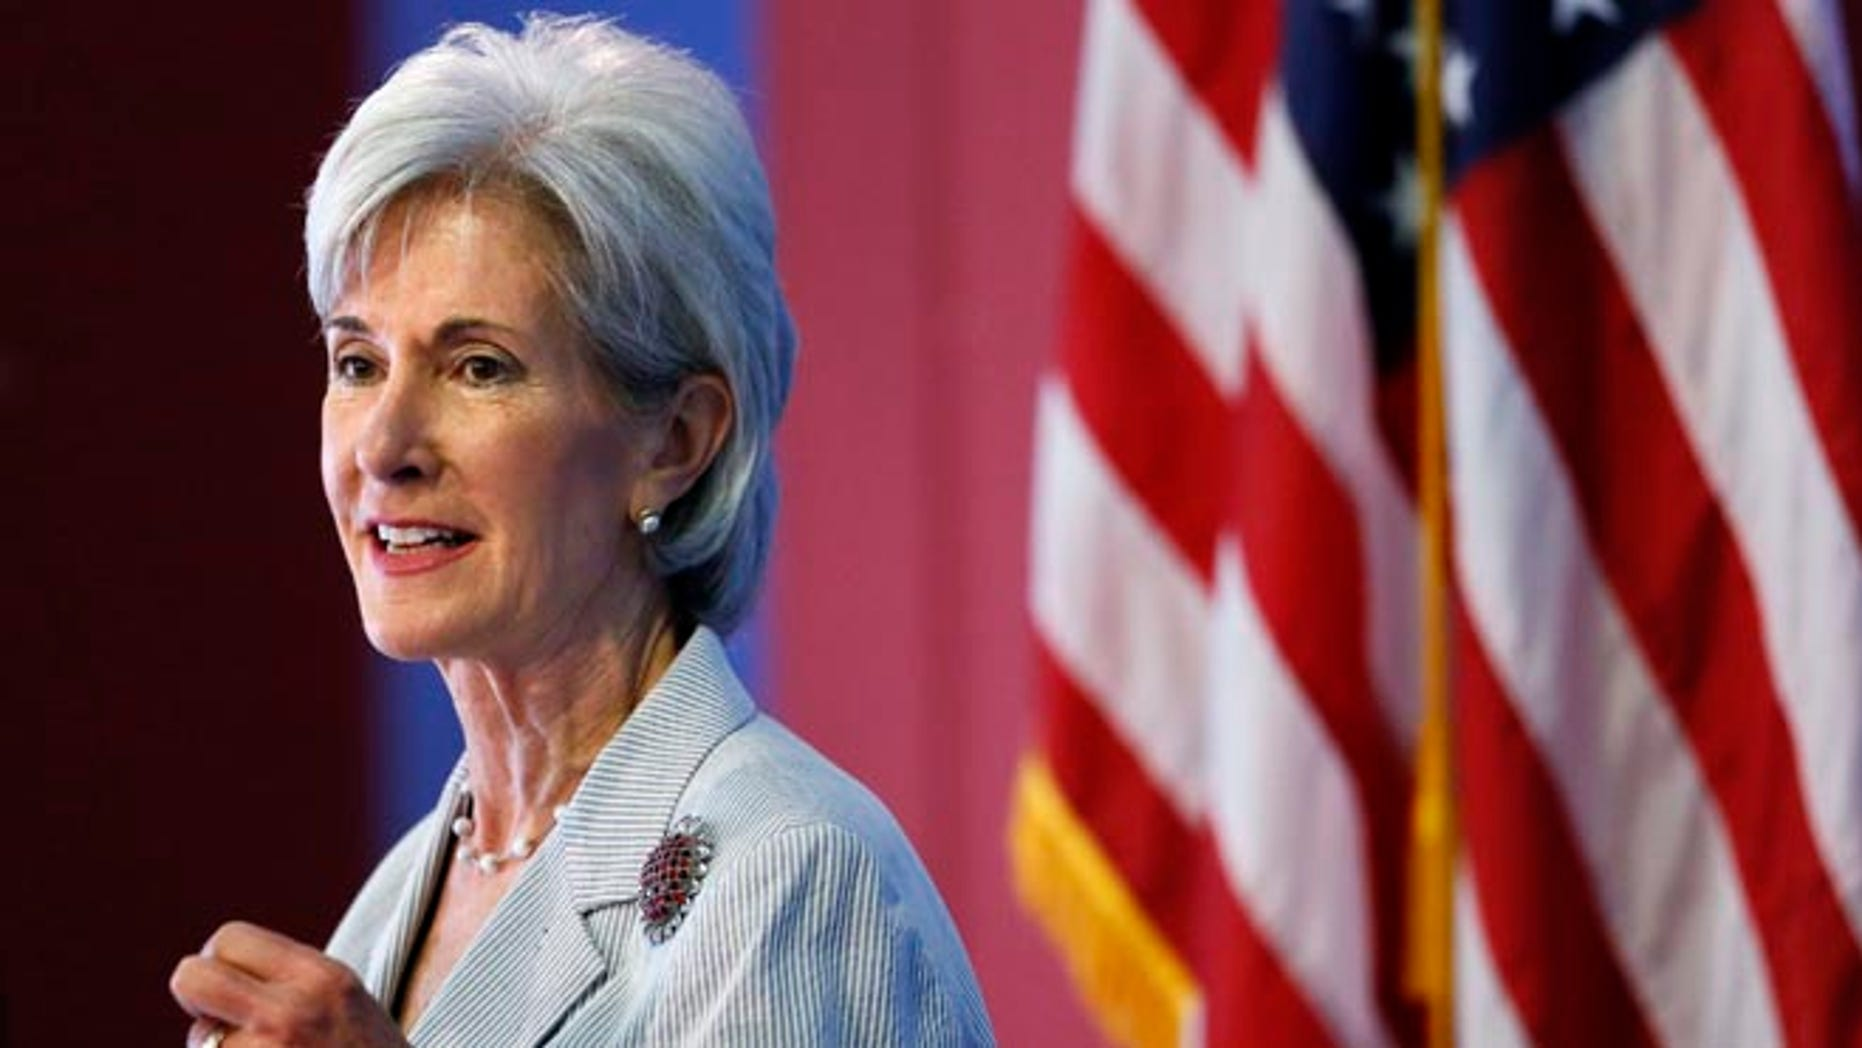 Aug. 22, 2013: In this photo, Health and Human Services Secretary Kathleen Sebelius speaks during an event discussing the federal health care overhaul in Philadelphia.